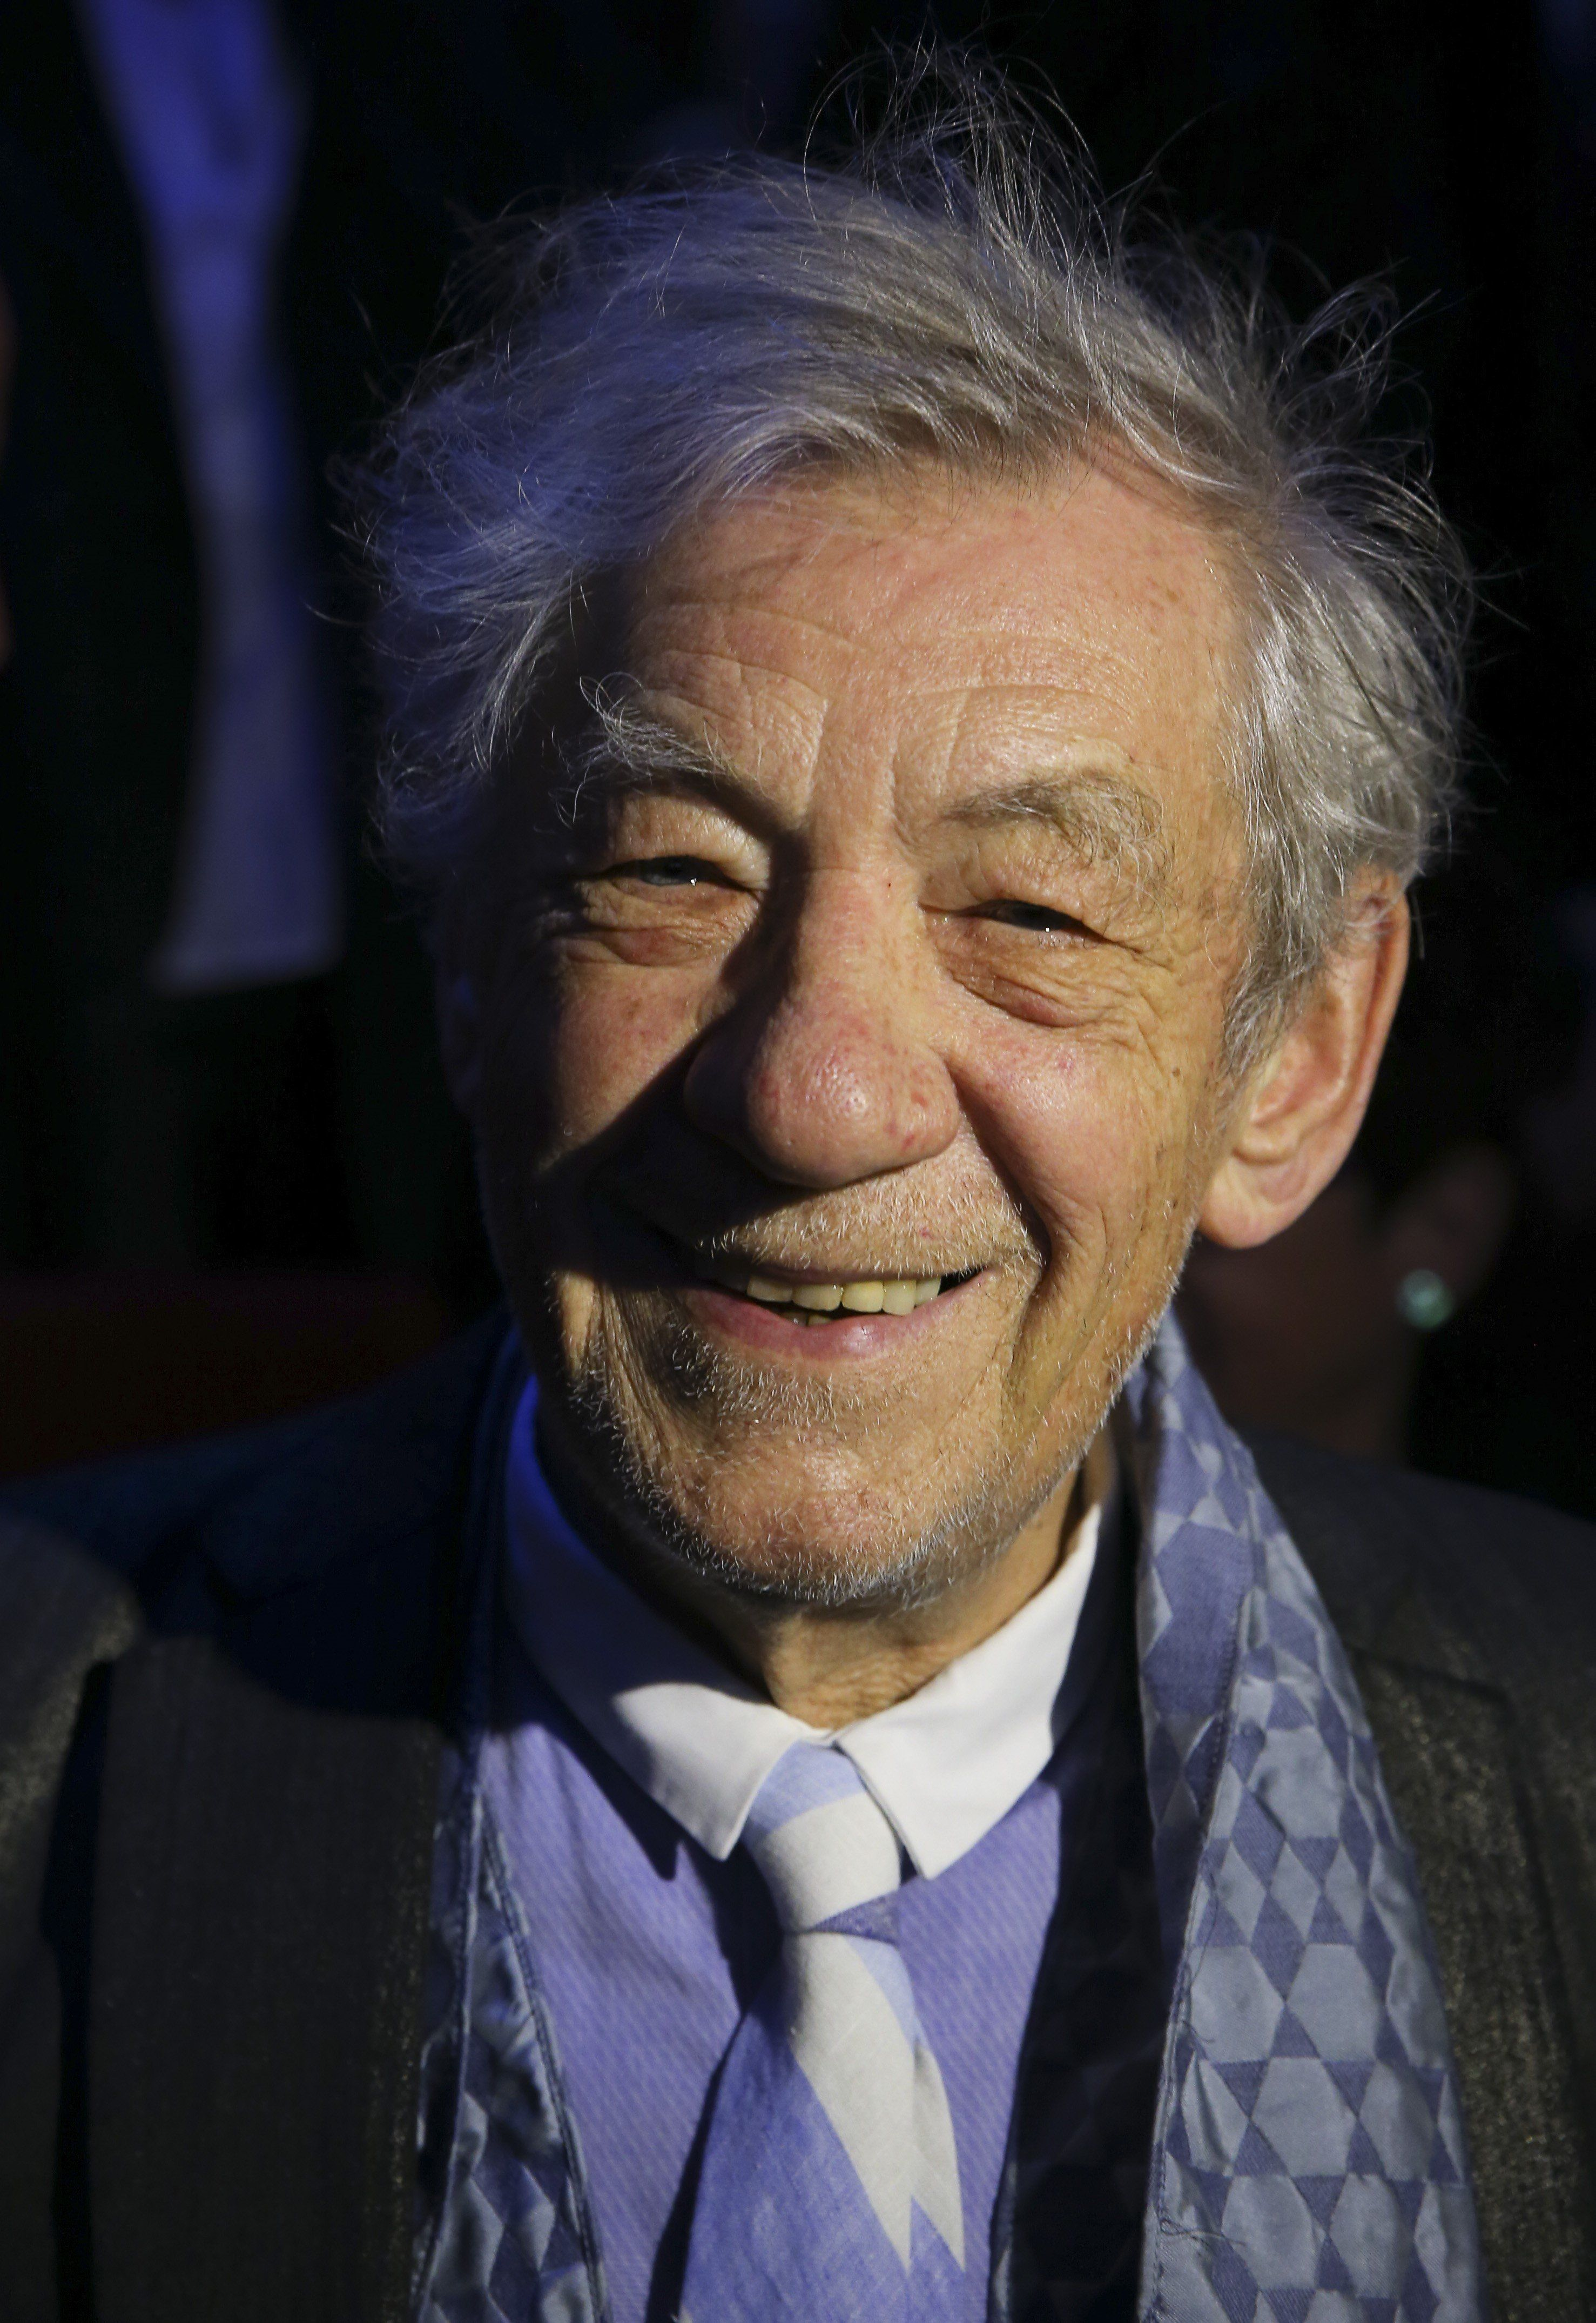 ISTANBUL, TURKEY - APRIL 04: British artist Ian McKellen is on the stage as the honorand of the 36th Istanbul Film Festival, organized by Istanbul Foundation for Culture and Arts (IKSV) at Maslak TIM Show Center on April 04, 2017, in Istanbul, Turkey. (Photo by Bulent Doruk/Anadolu Agency/Getty Images)